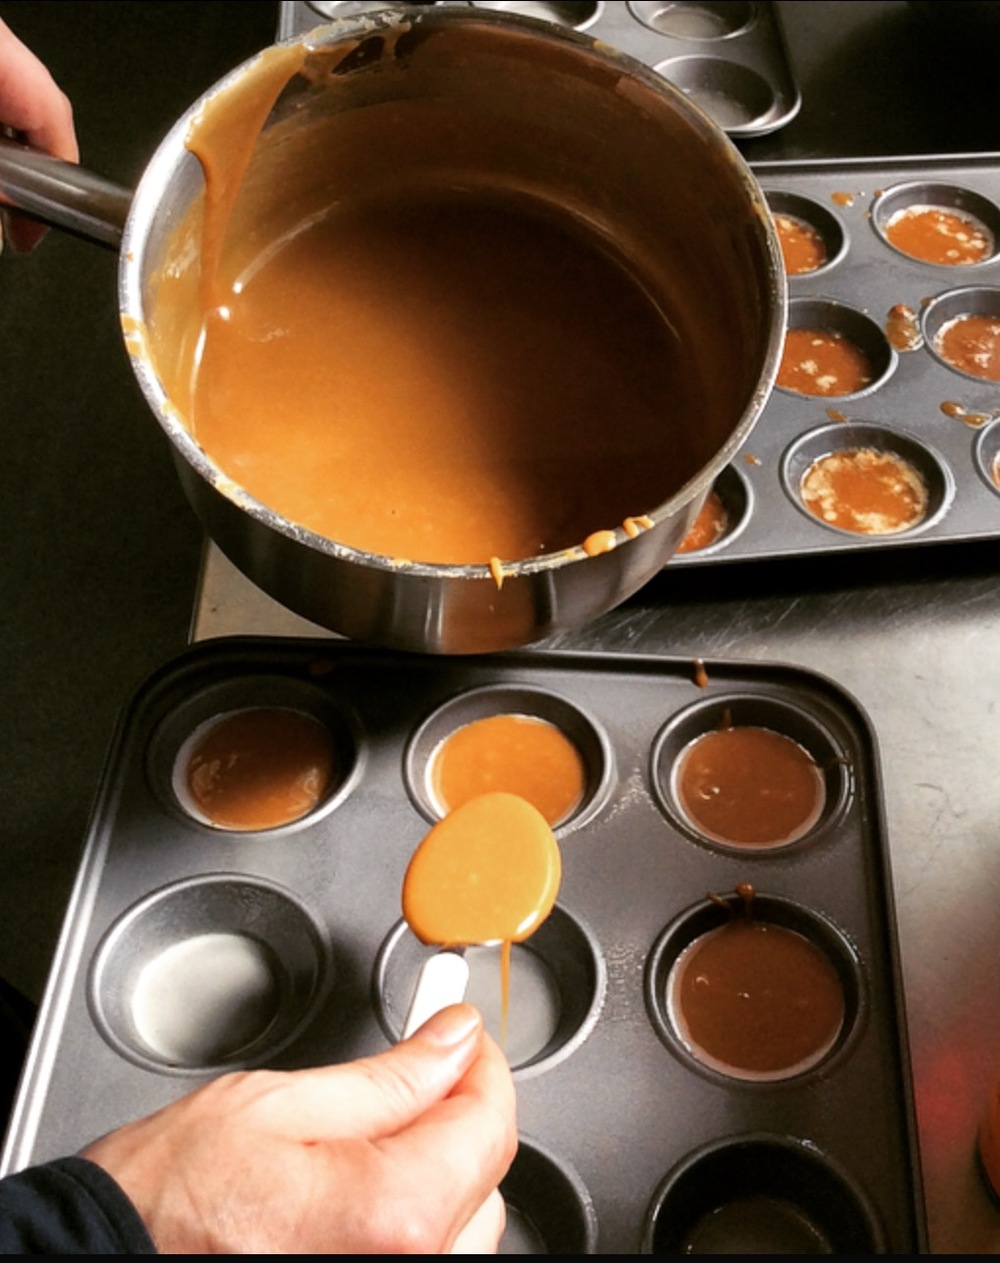 Pouring the fudge in to moulds